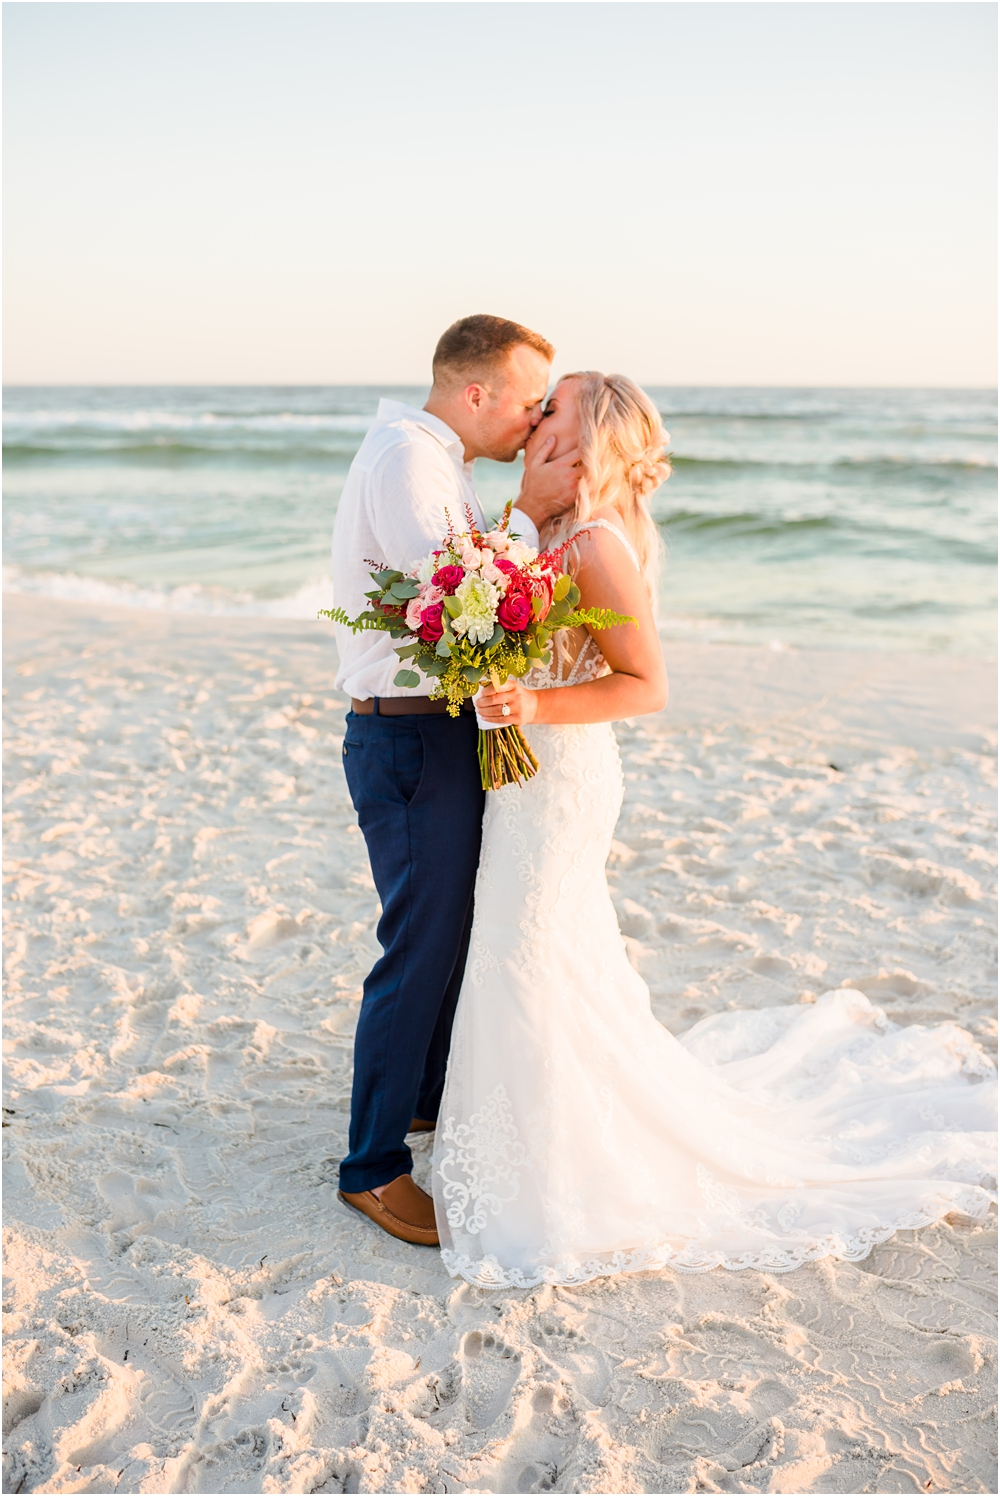 mcglothlin-wedding-kiersten-stevenson-photography-30a-panama-city-beach-dothan-tallahassee-(106-of-145).jpg